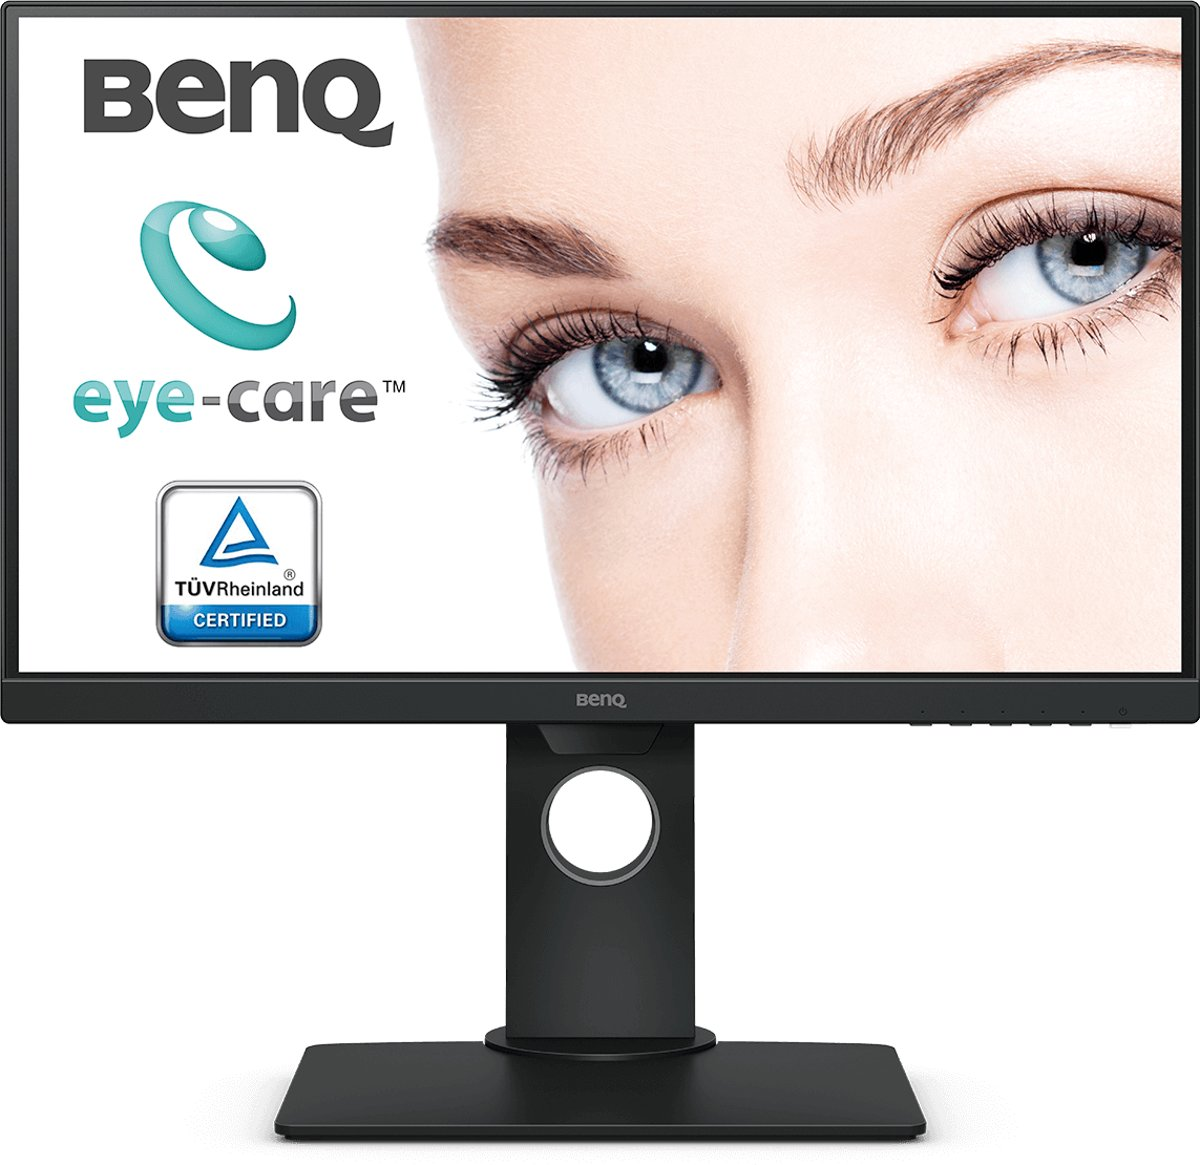 Benq BL2480T - Full HD IPS Monitor / 24 inch